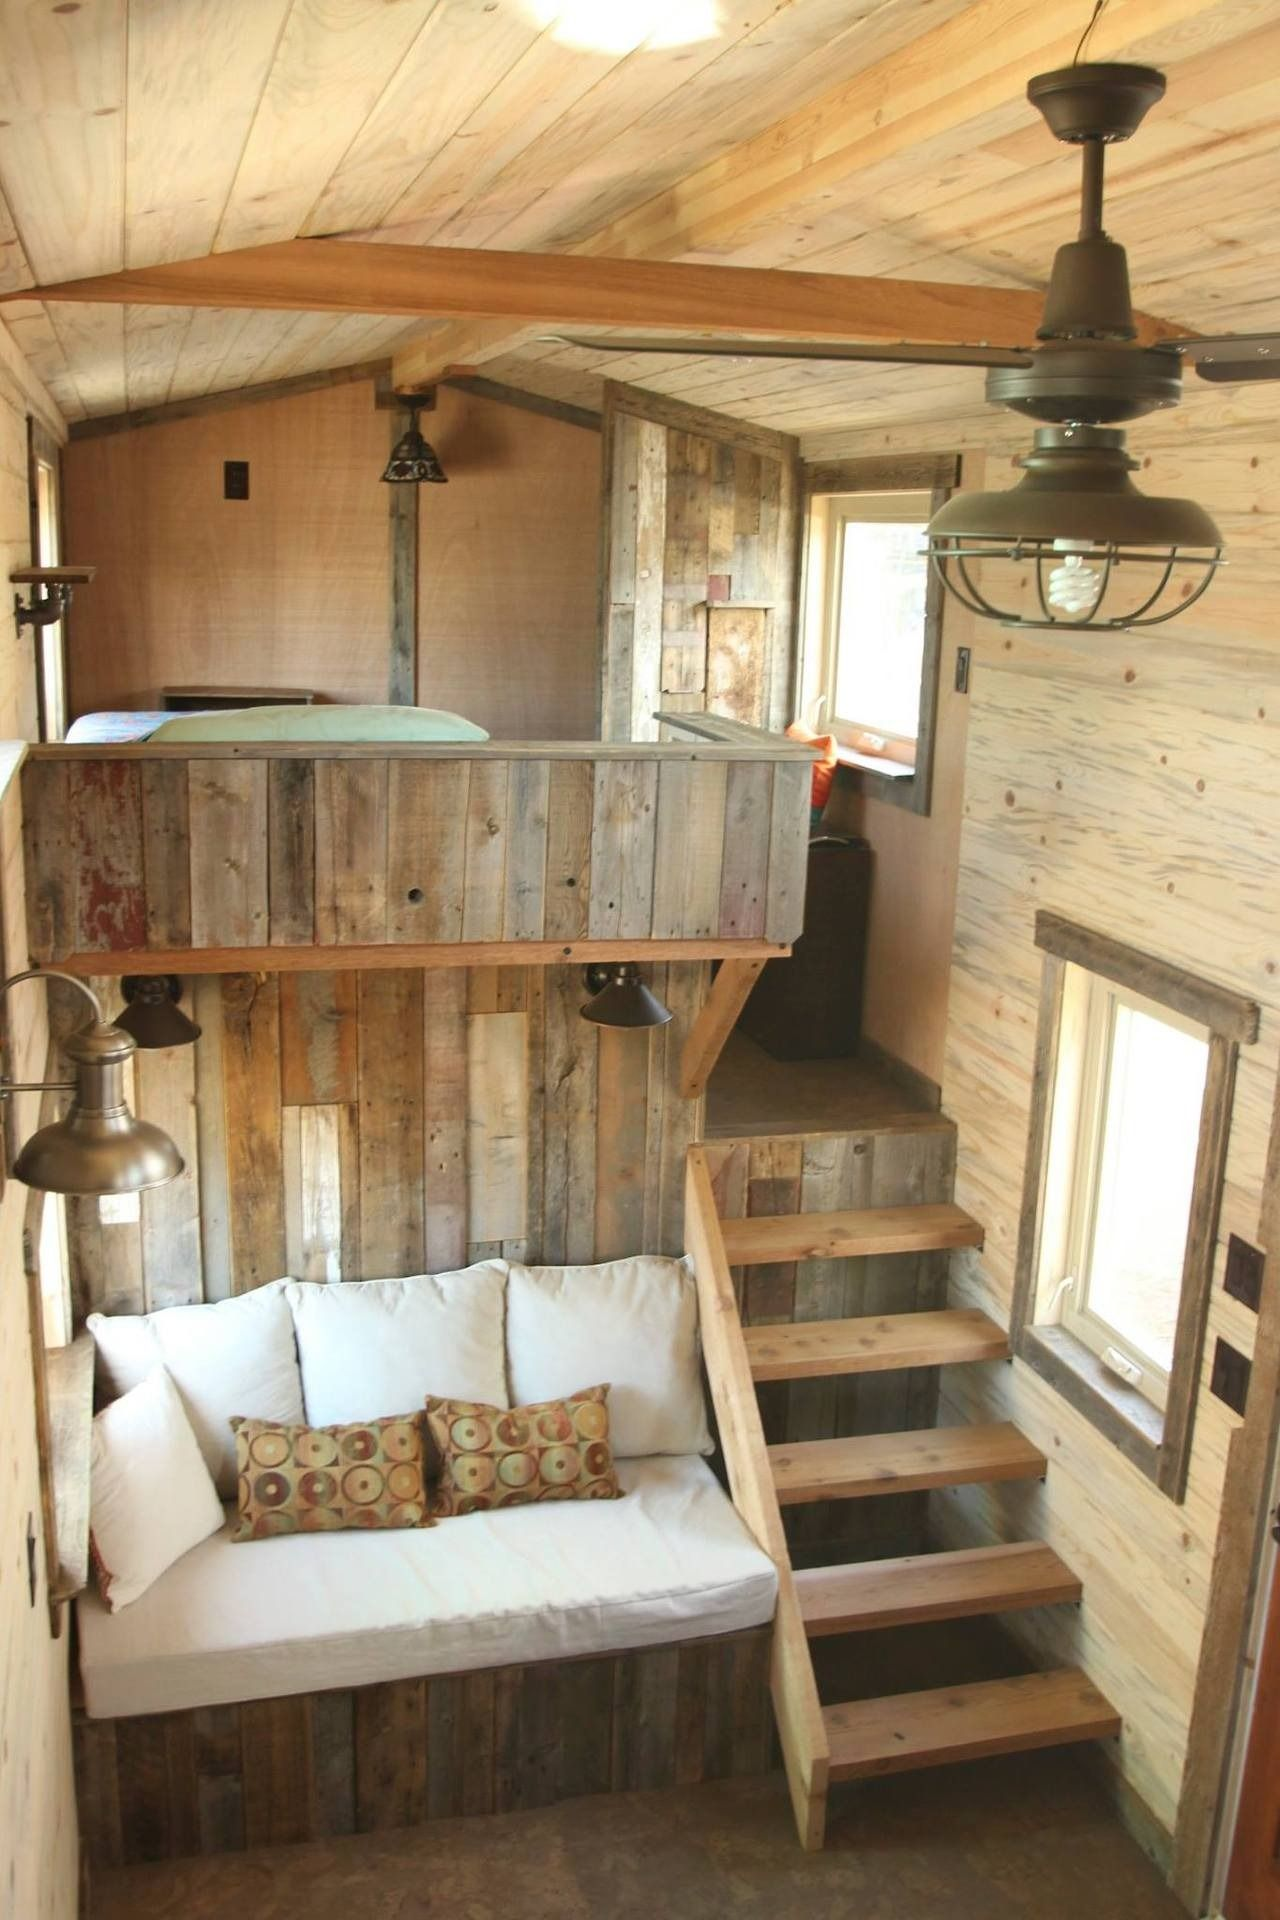 JJ\u0027sPlace from SimBLISSity Tiny Homes | Small \u0026 Tiny Houses ...